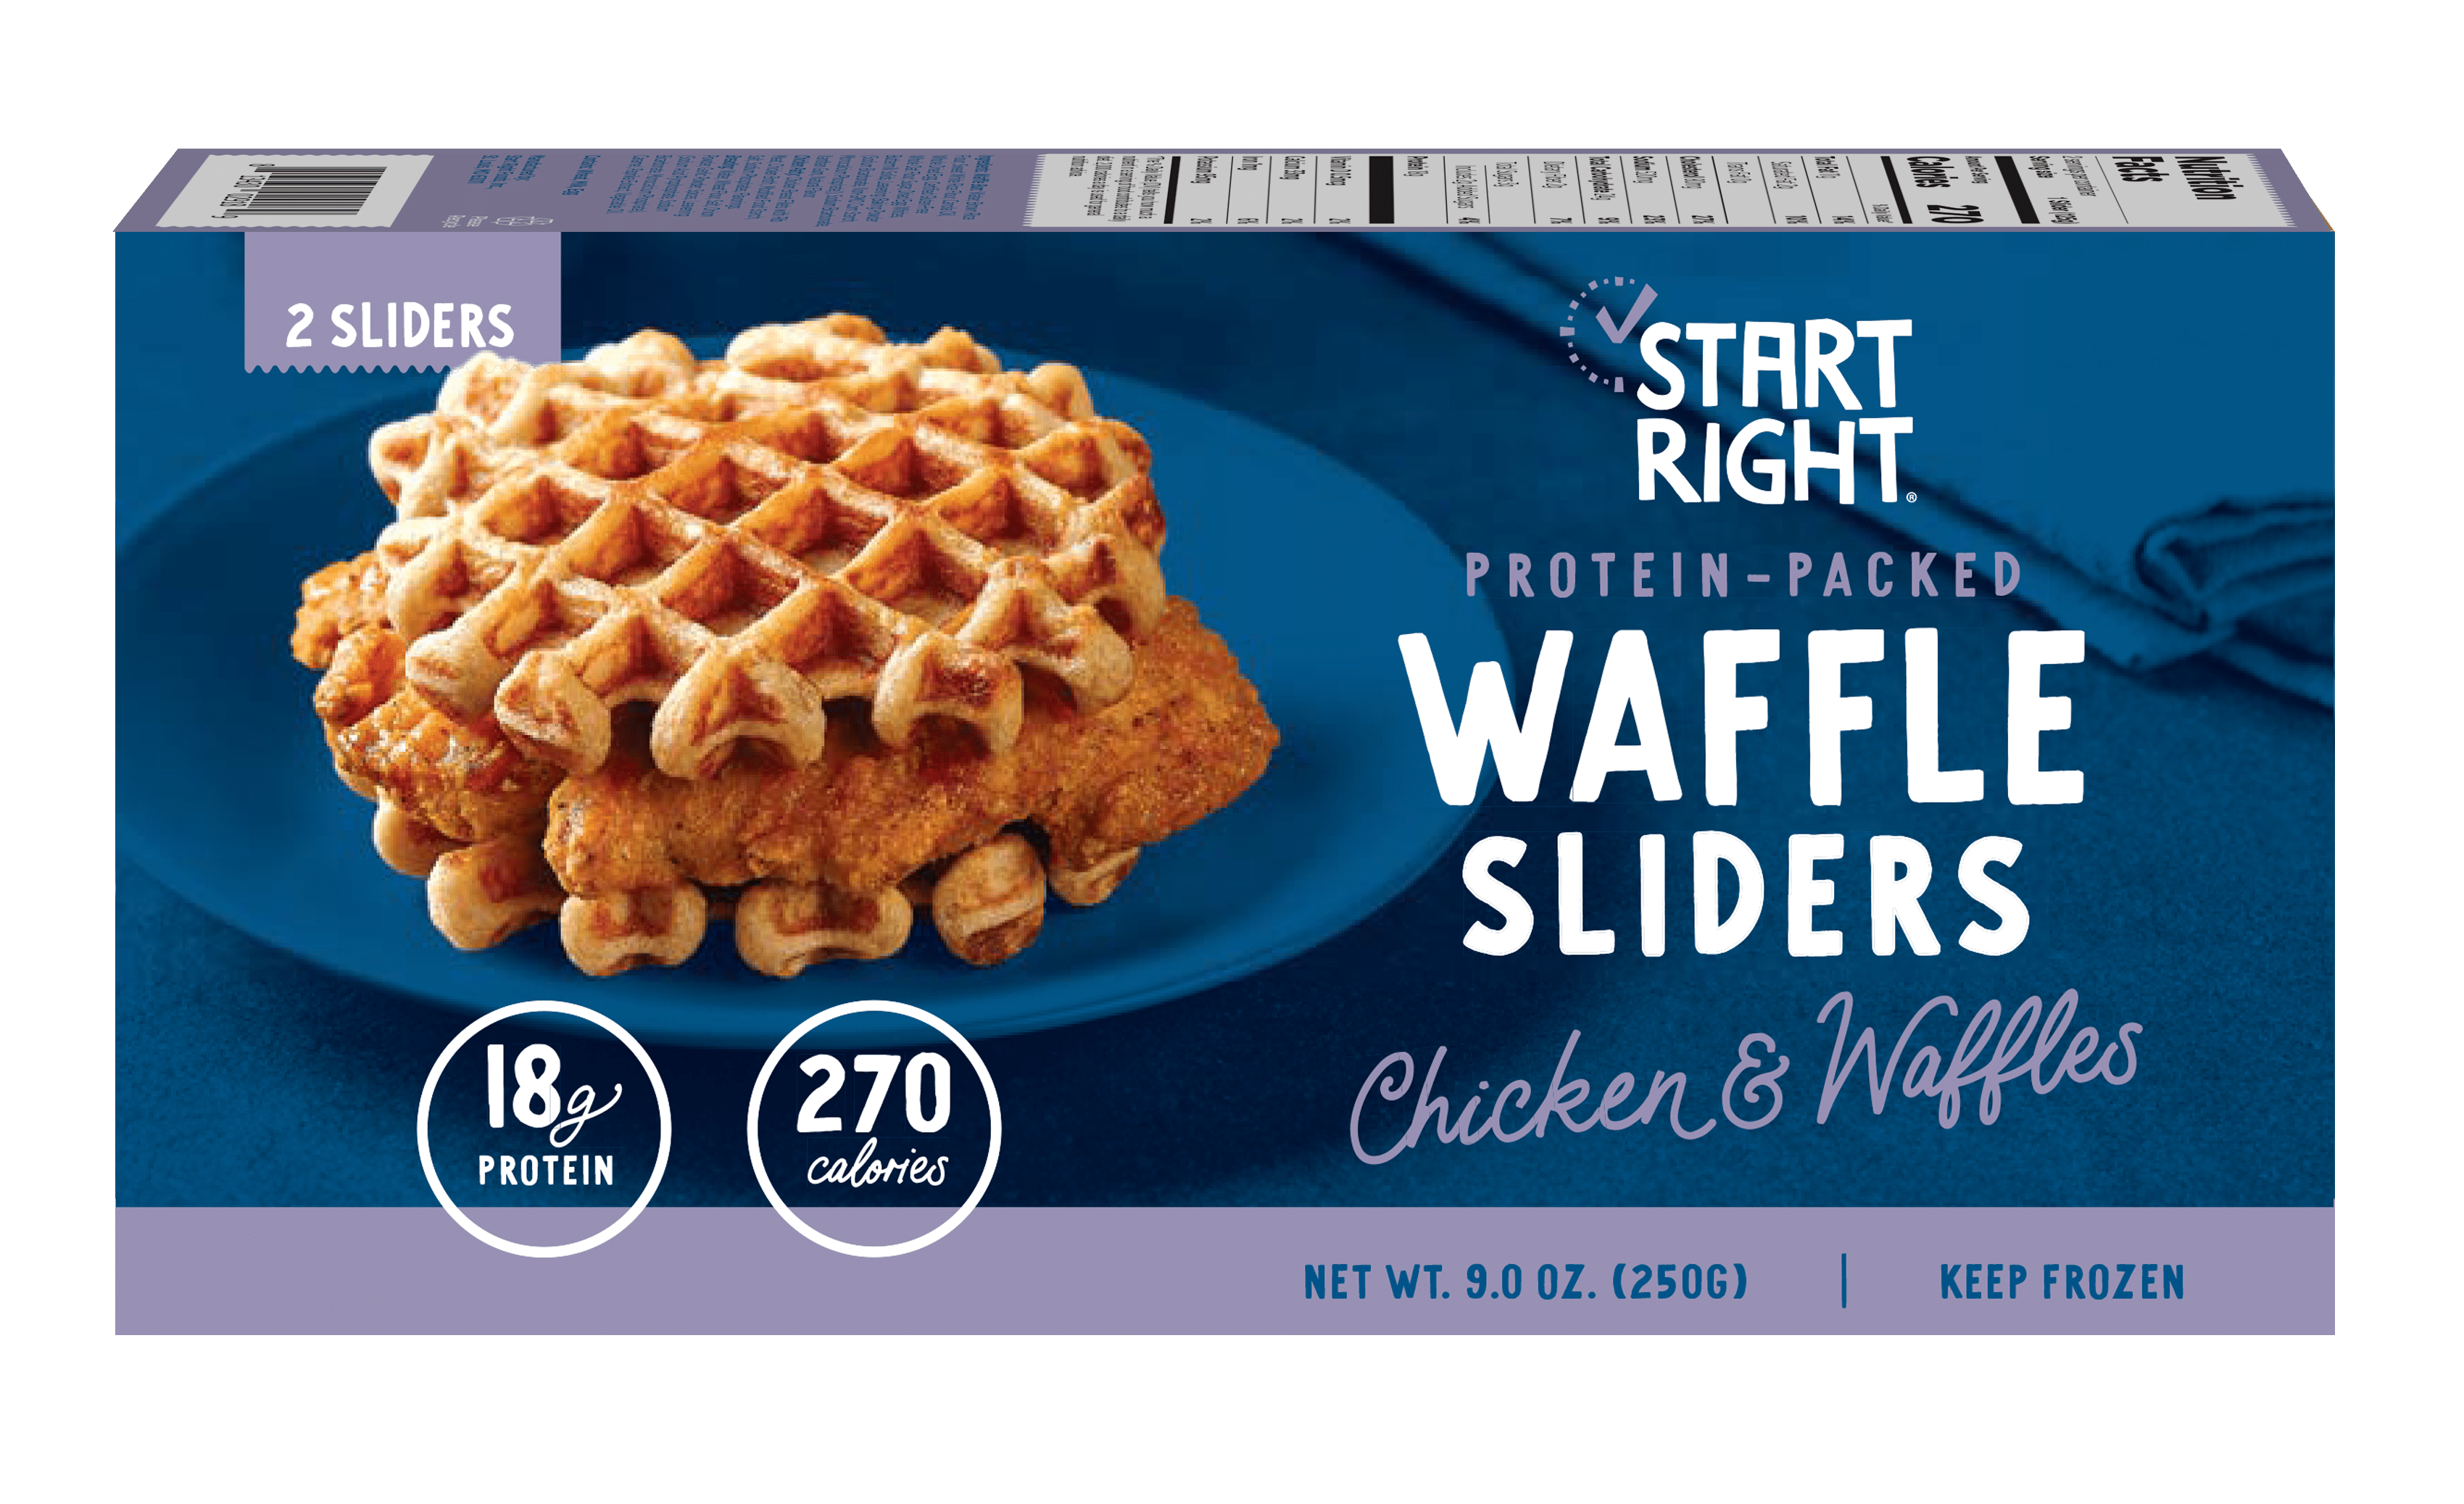 Start Right Launches Protein-Packed Chicken & Waffles Breakfast Sandwich in Sprouts Farmer's Market